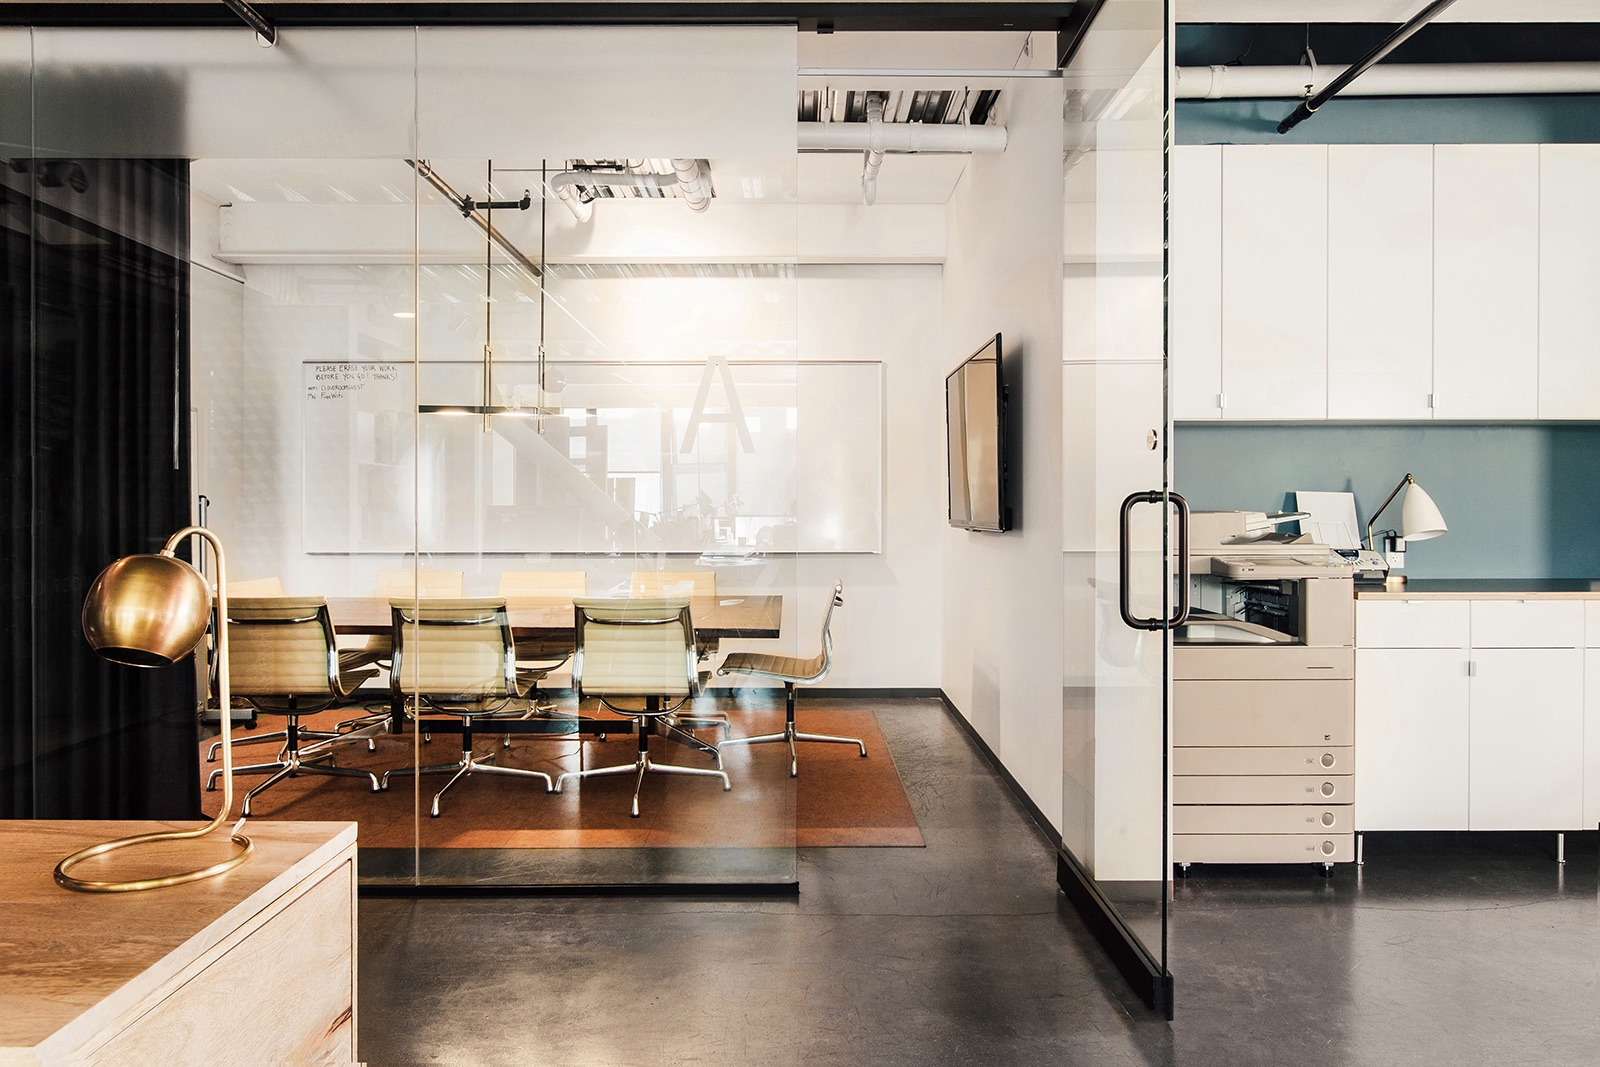 cloudroom-seattle-workspace-4